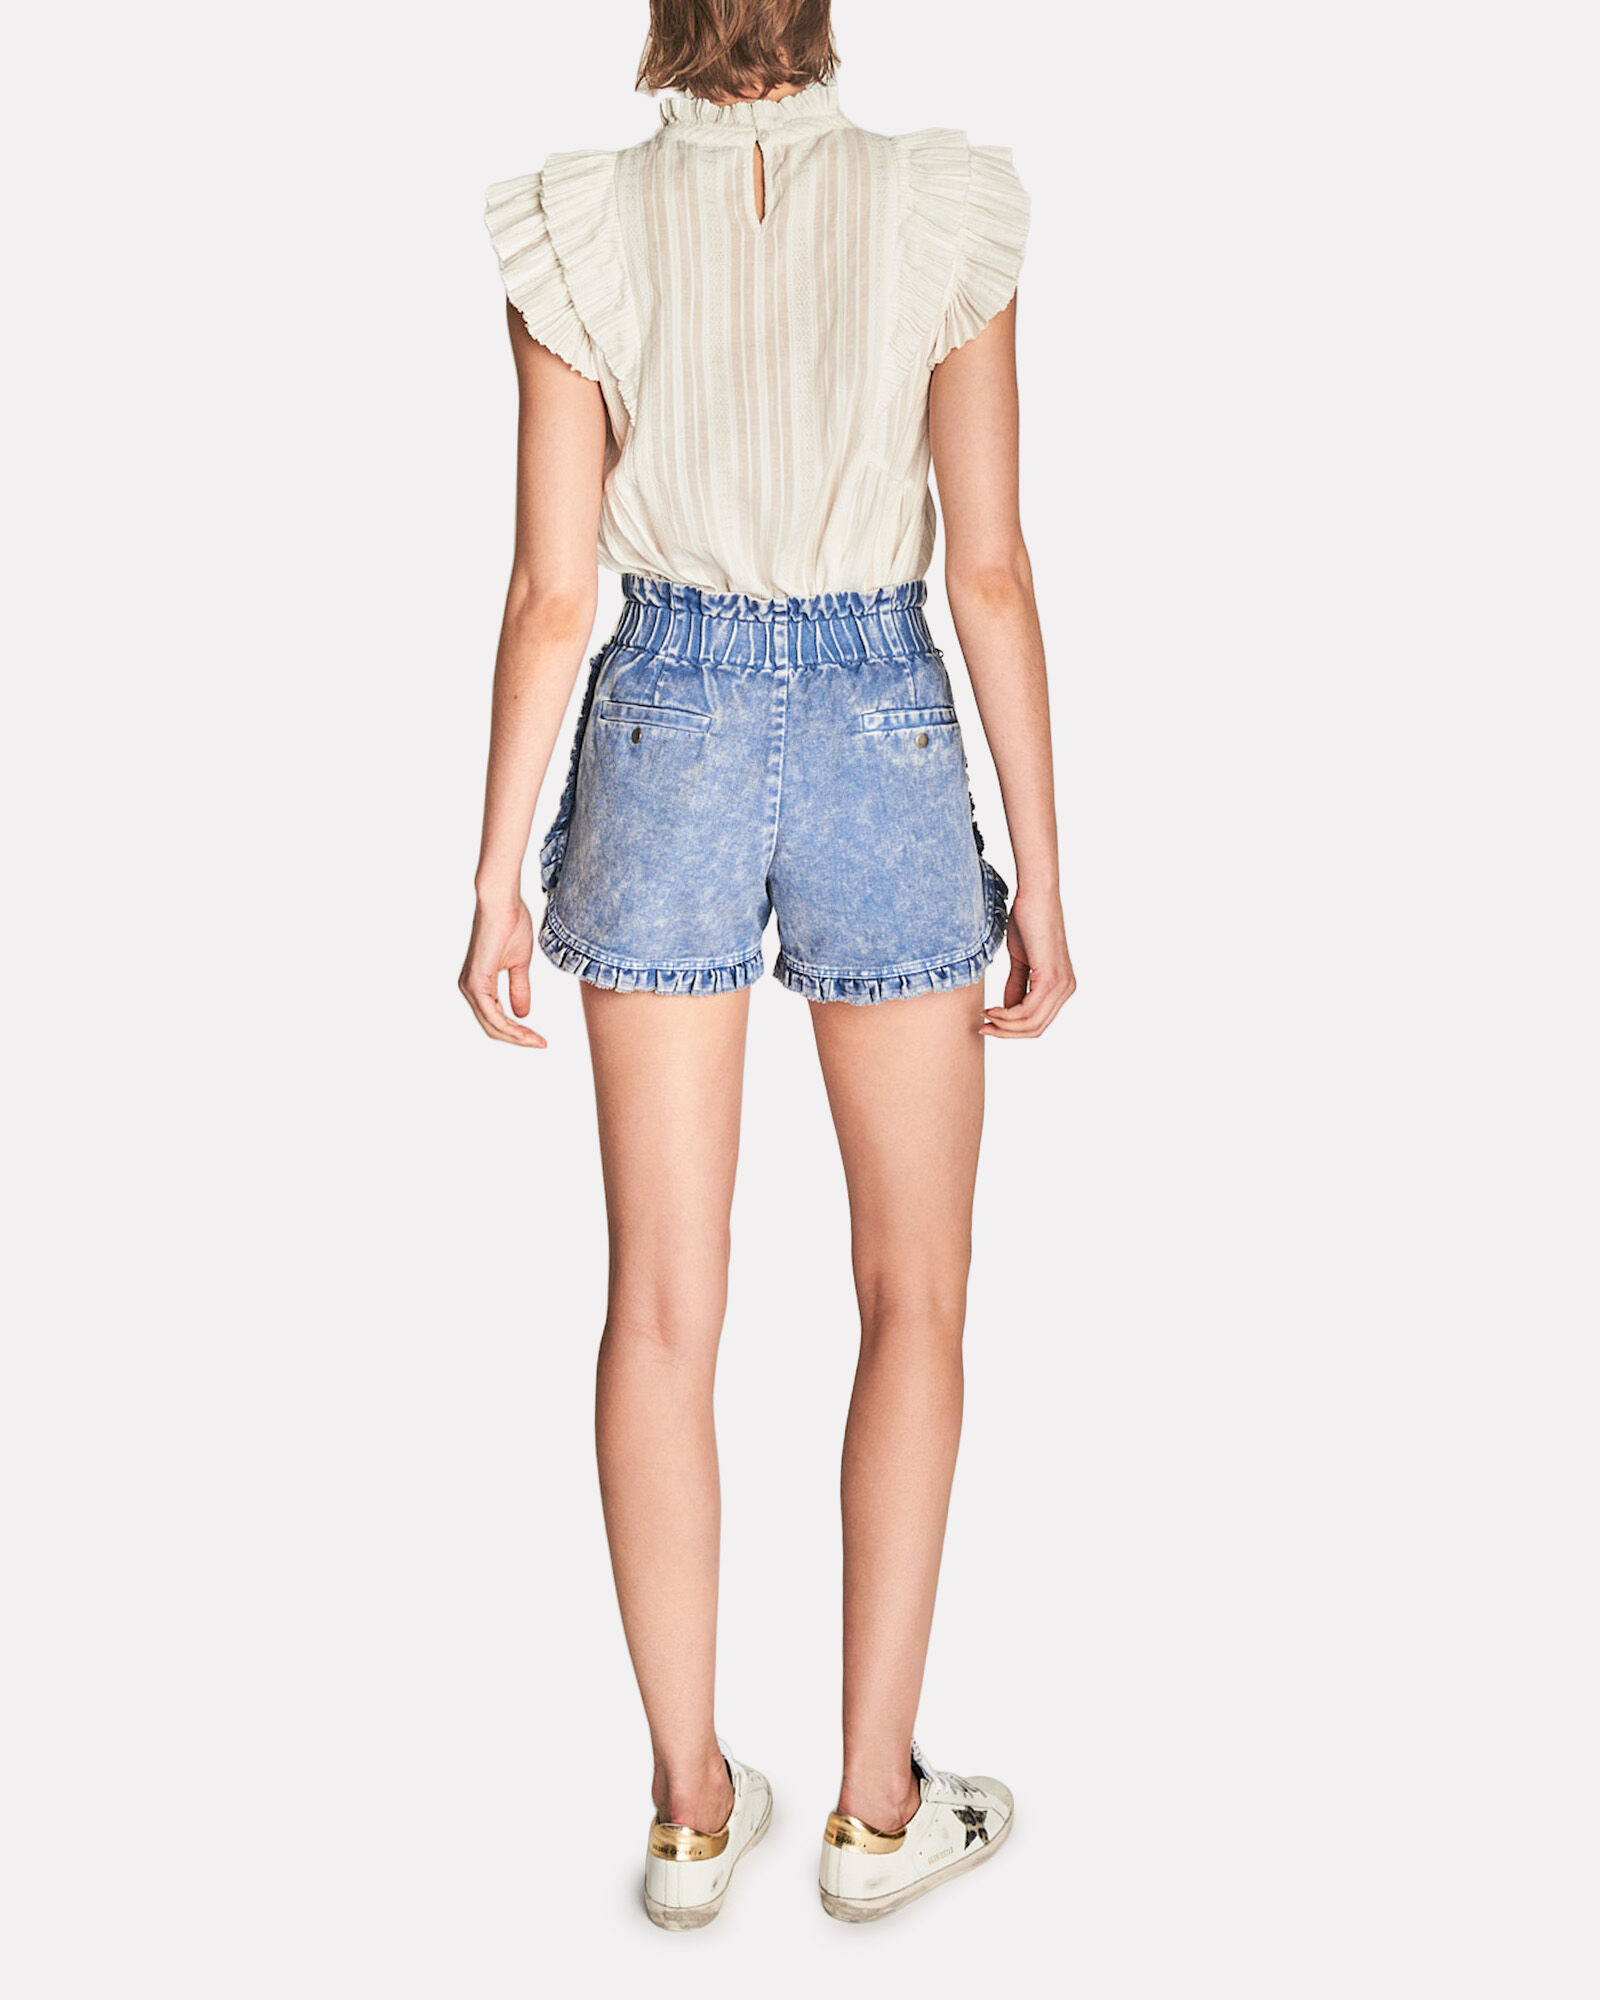 Idun Ruffled Denim Shorts, BLUE-MED, hi-res